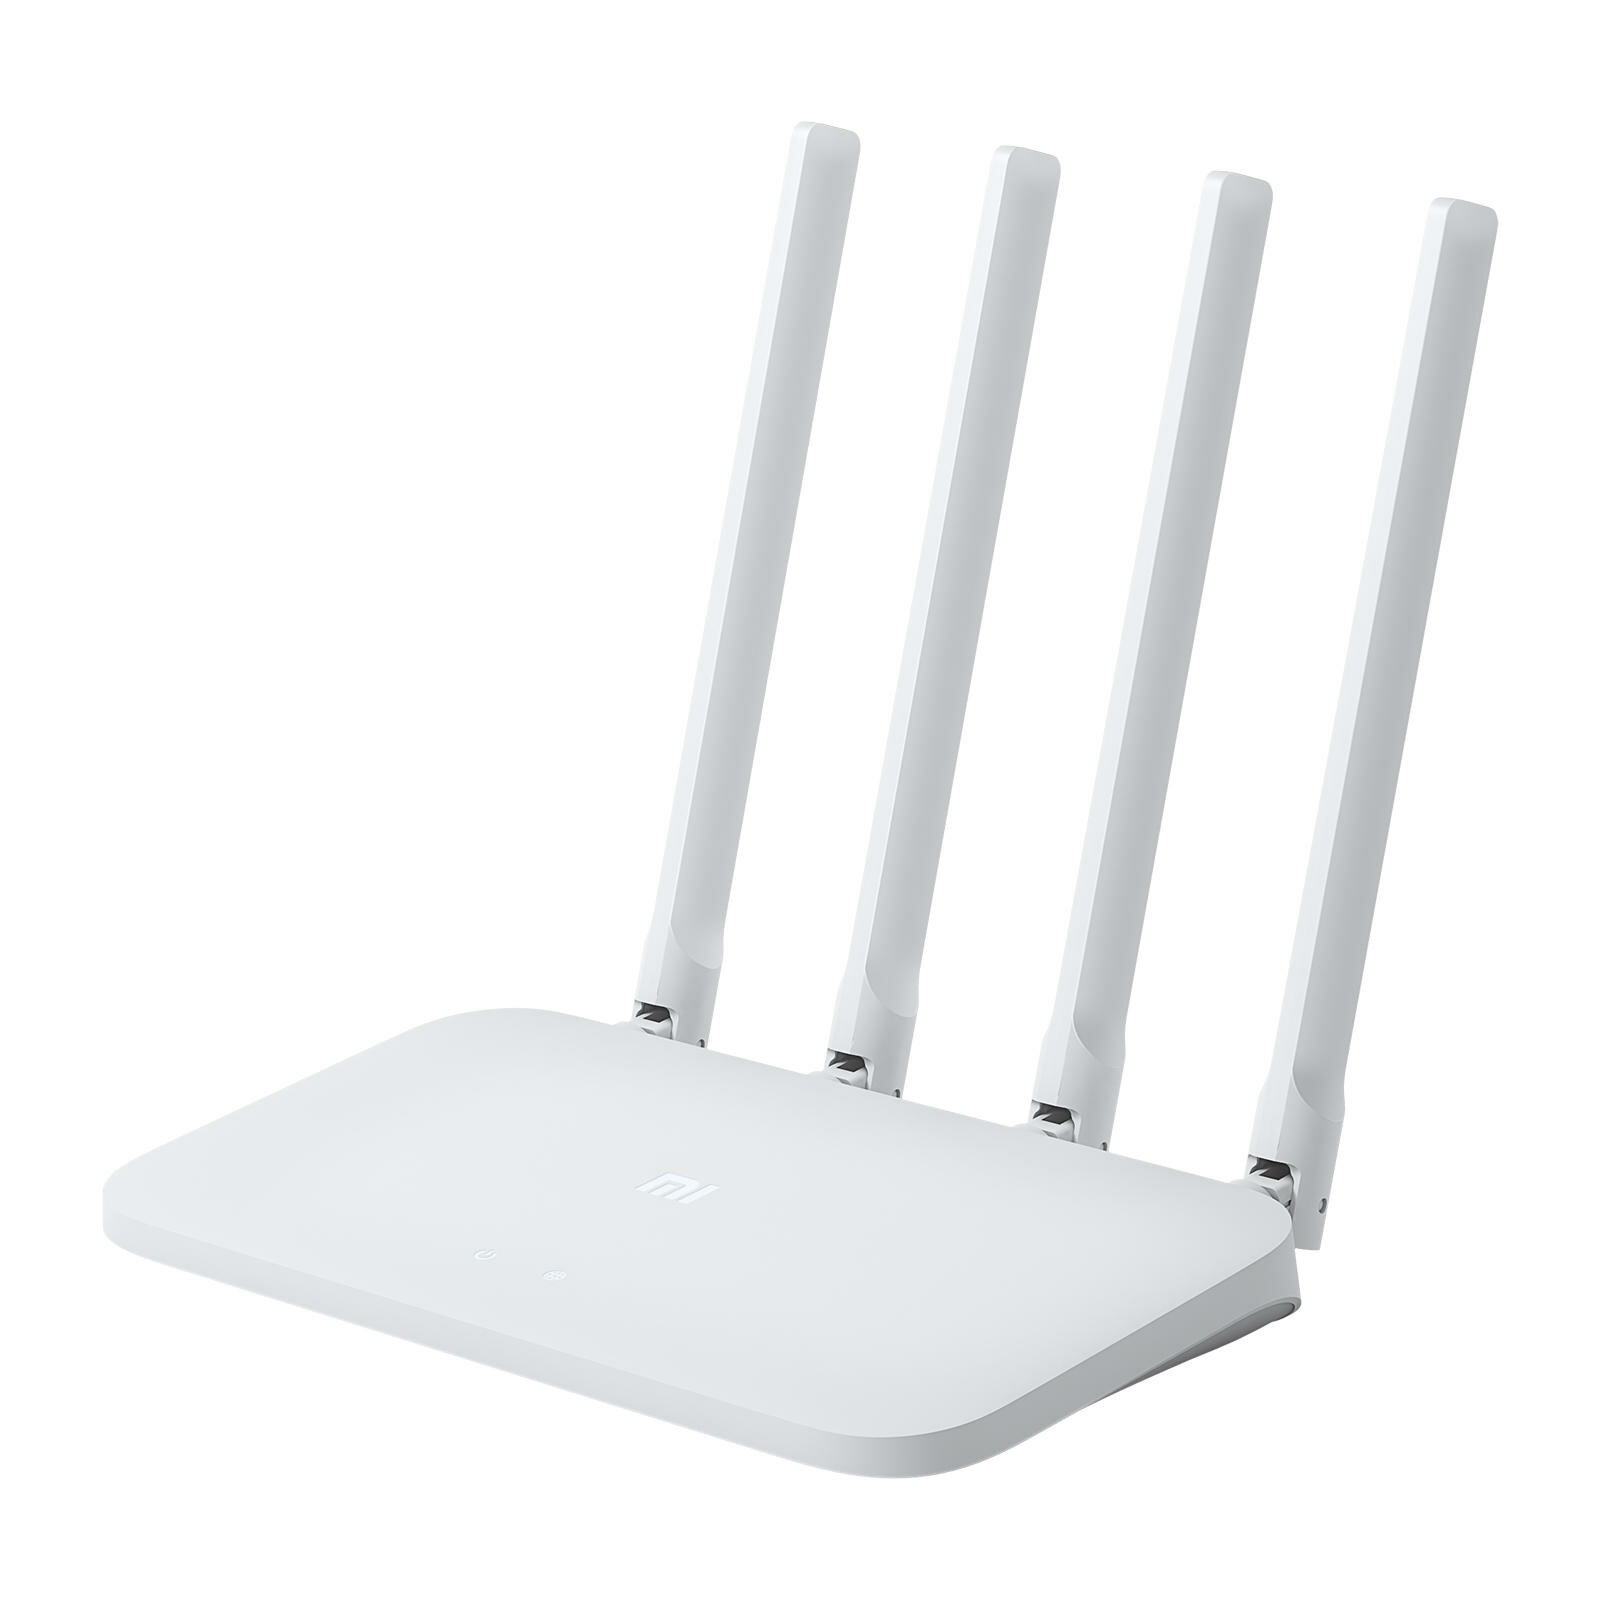 Xiaomi Mi 4C Wireless Router 2.4 GHz 300Mbps Empat Antena Jaringan Nirkabel WIFI Router